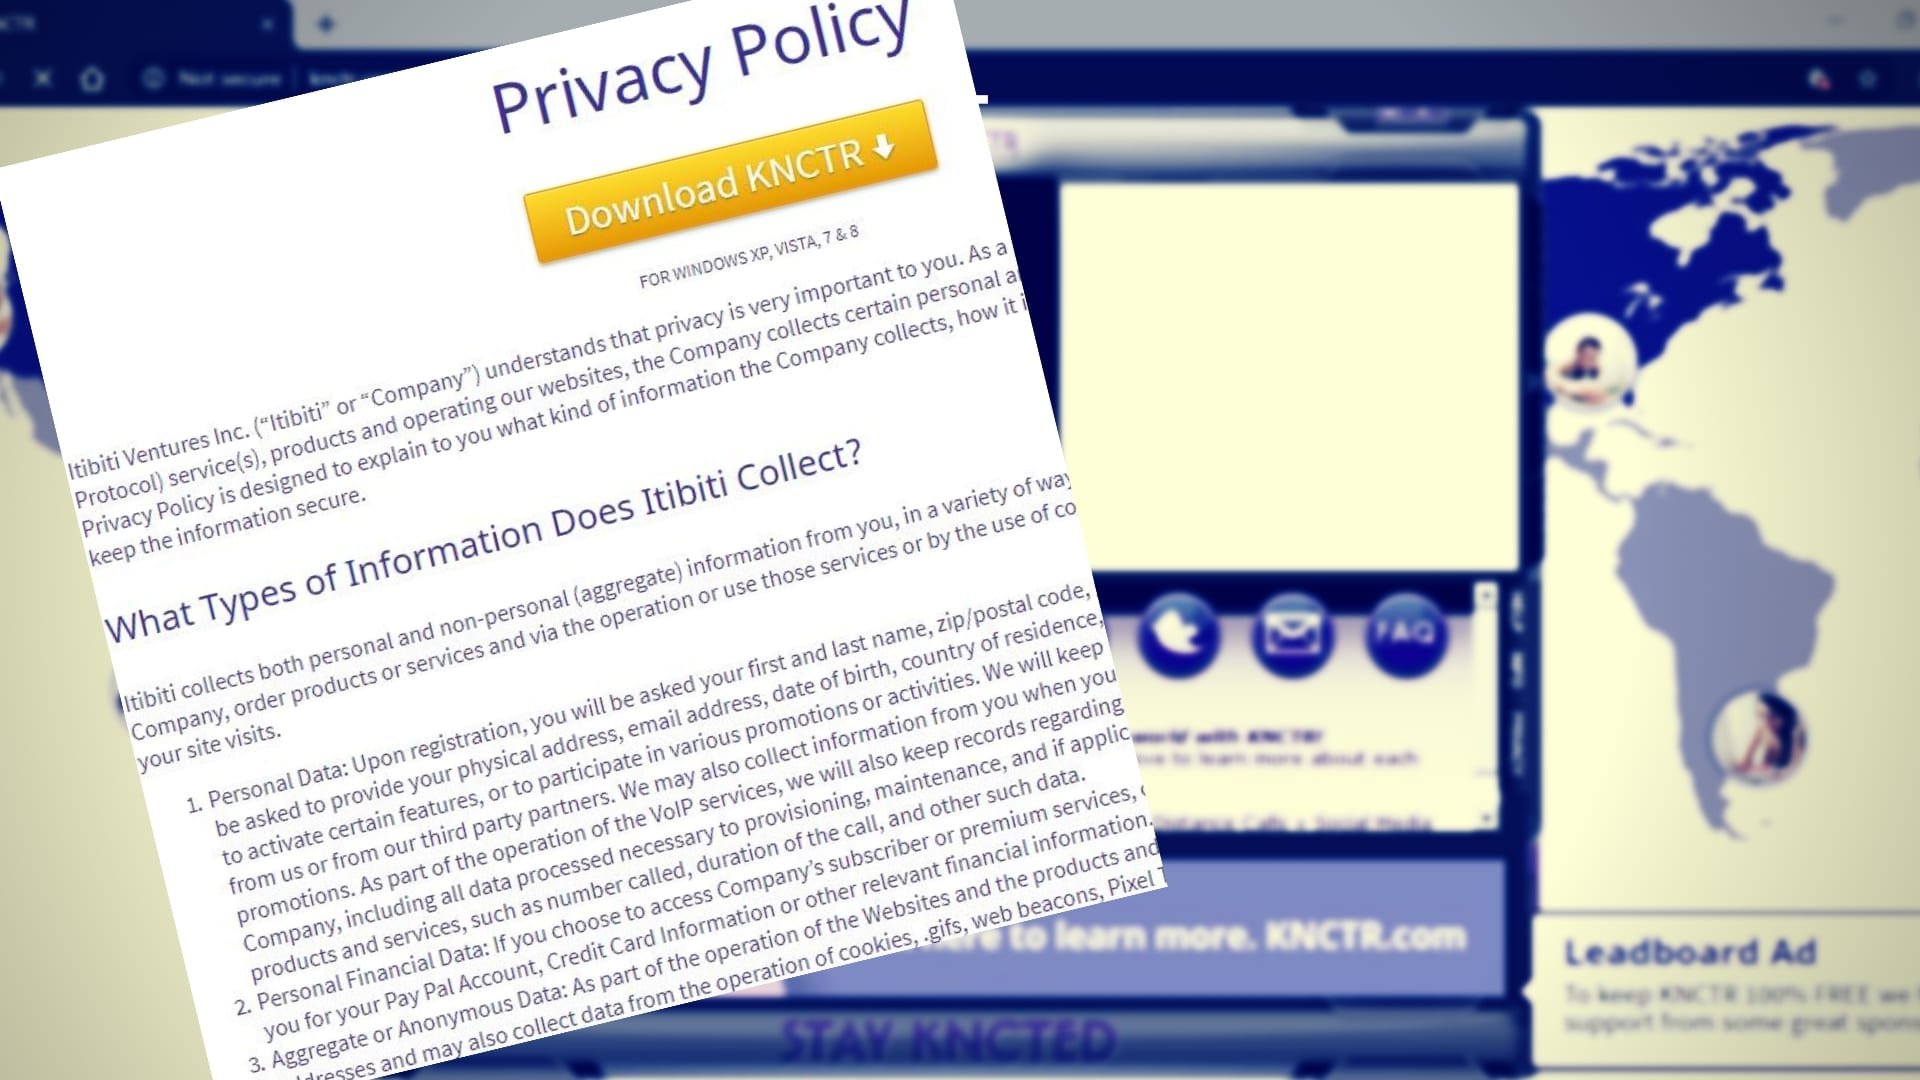 knctr privacy policy